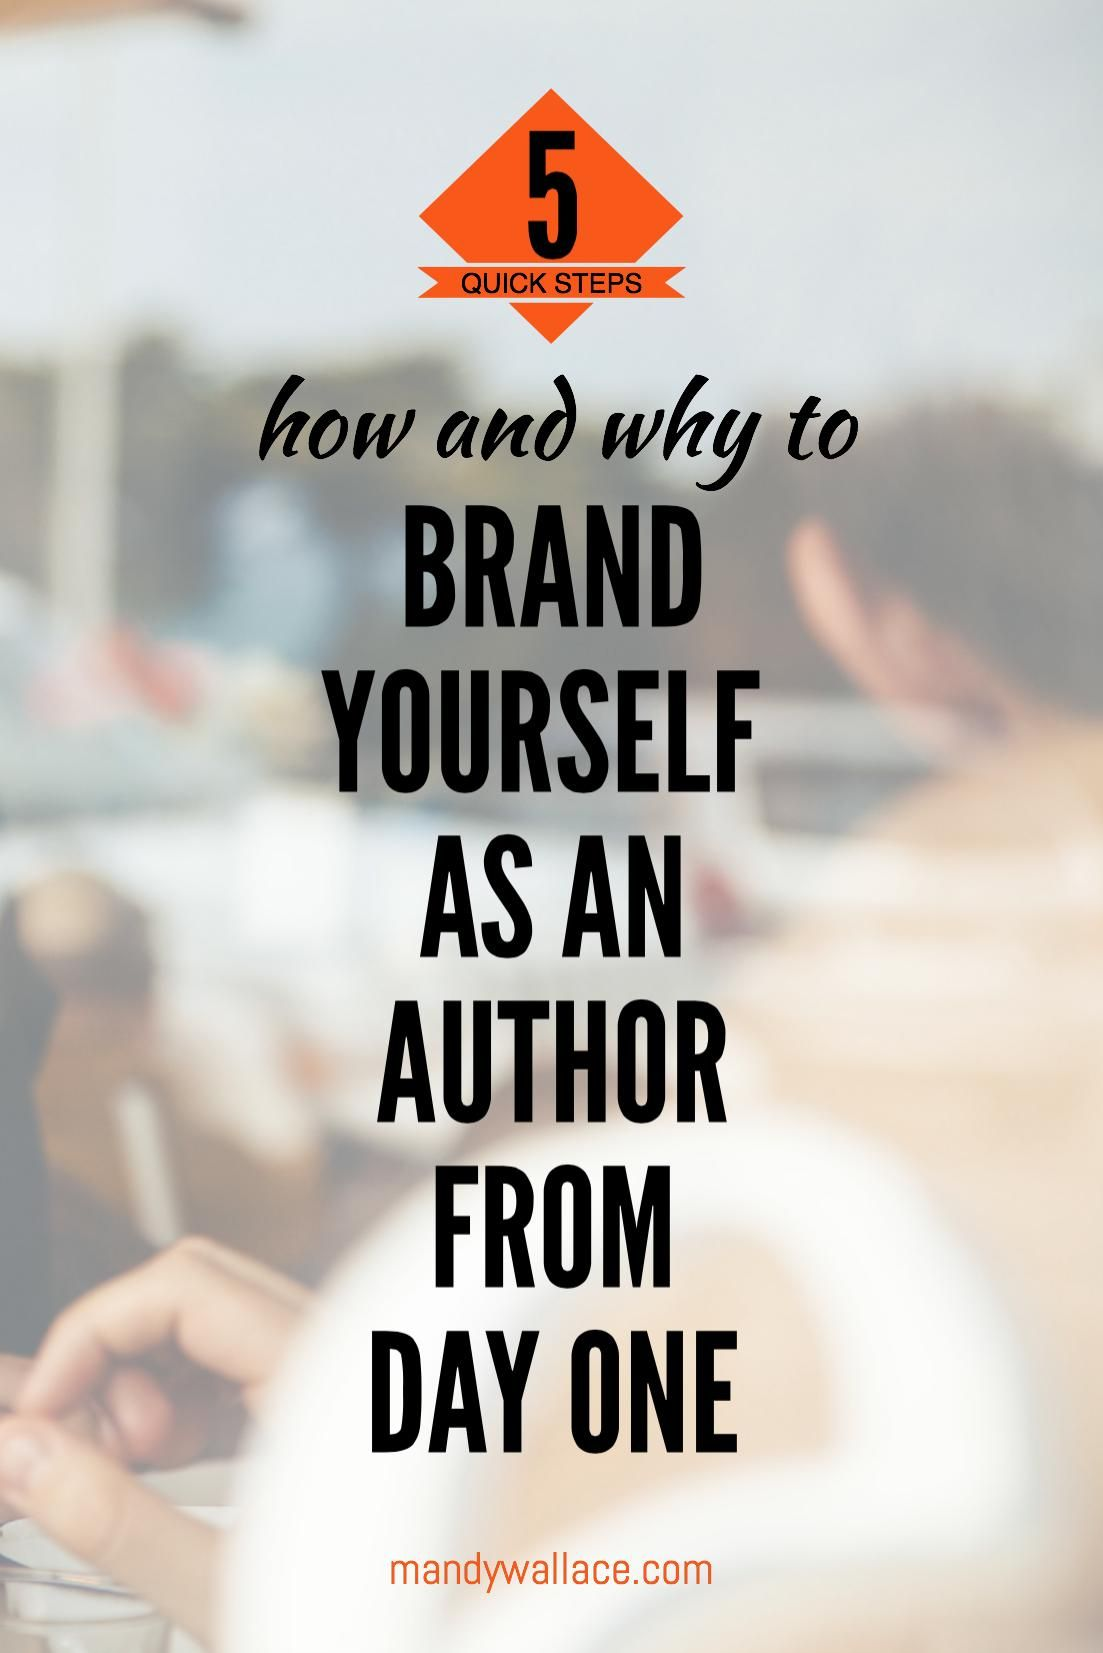 How And Why To Brand Yourself As An Author From Day One